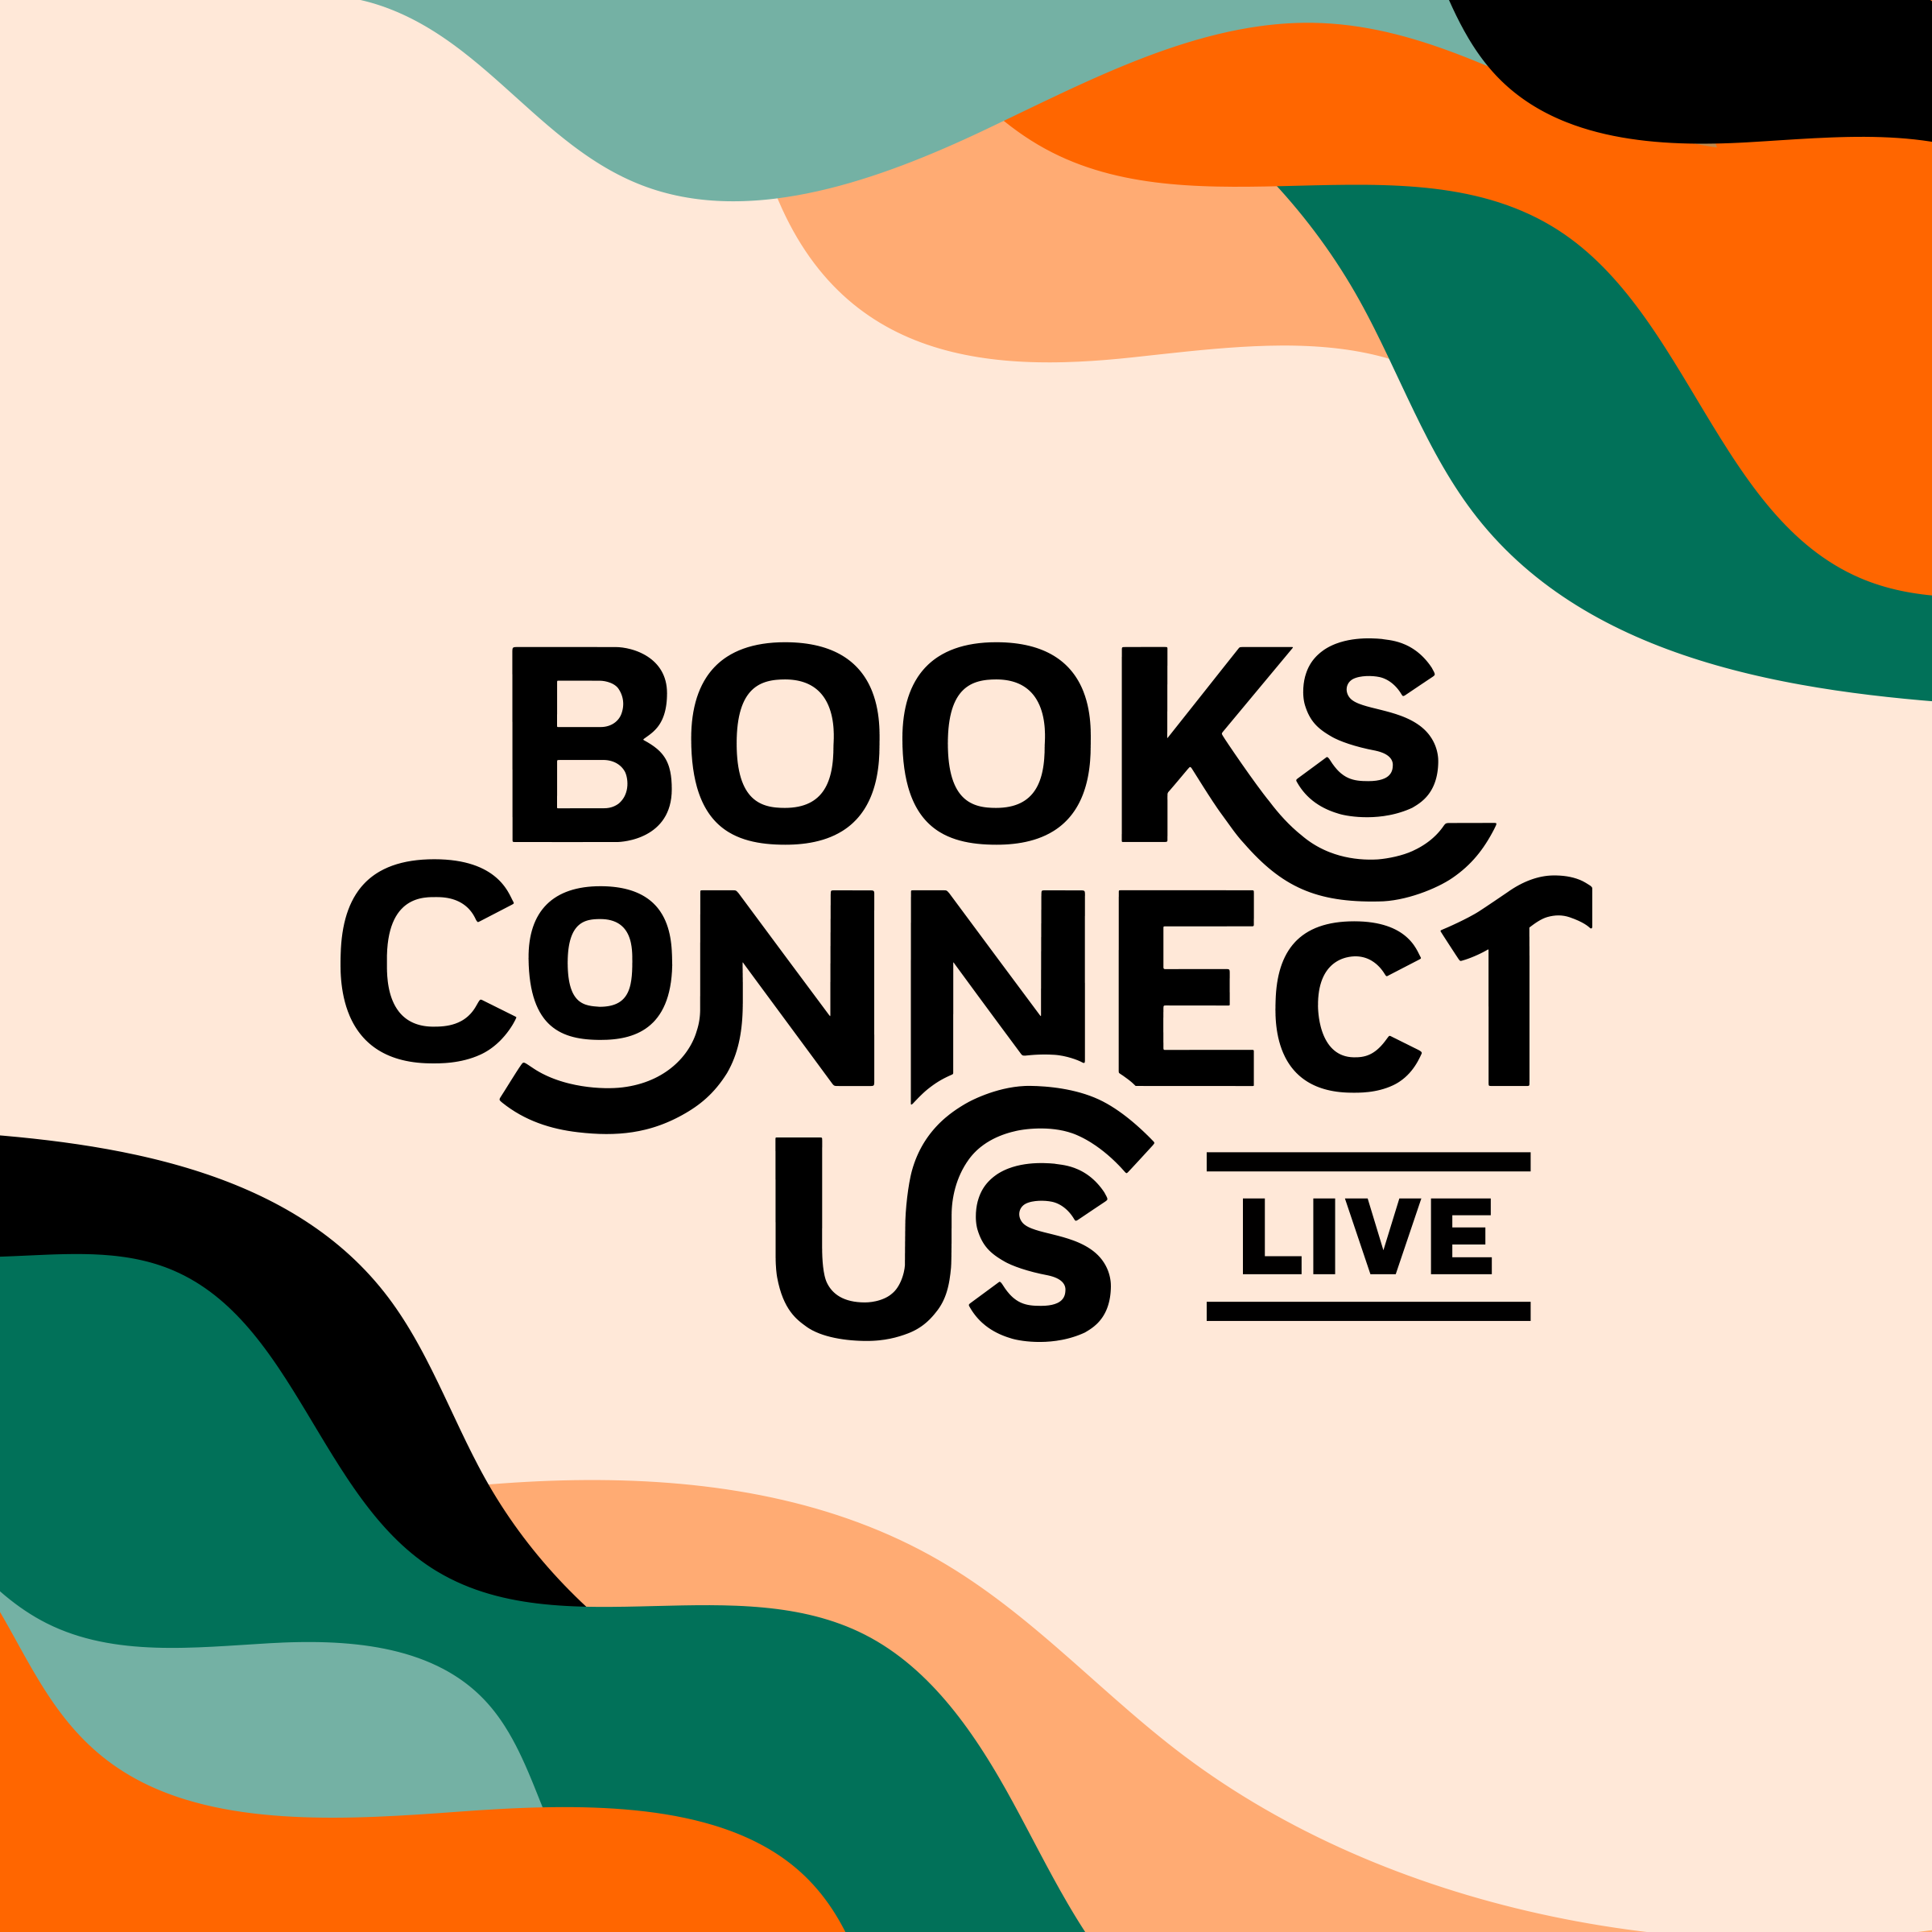 Books Connect Us Live 6/15-6/28